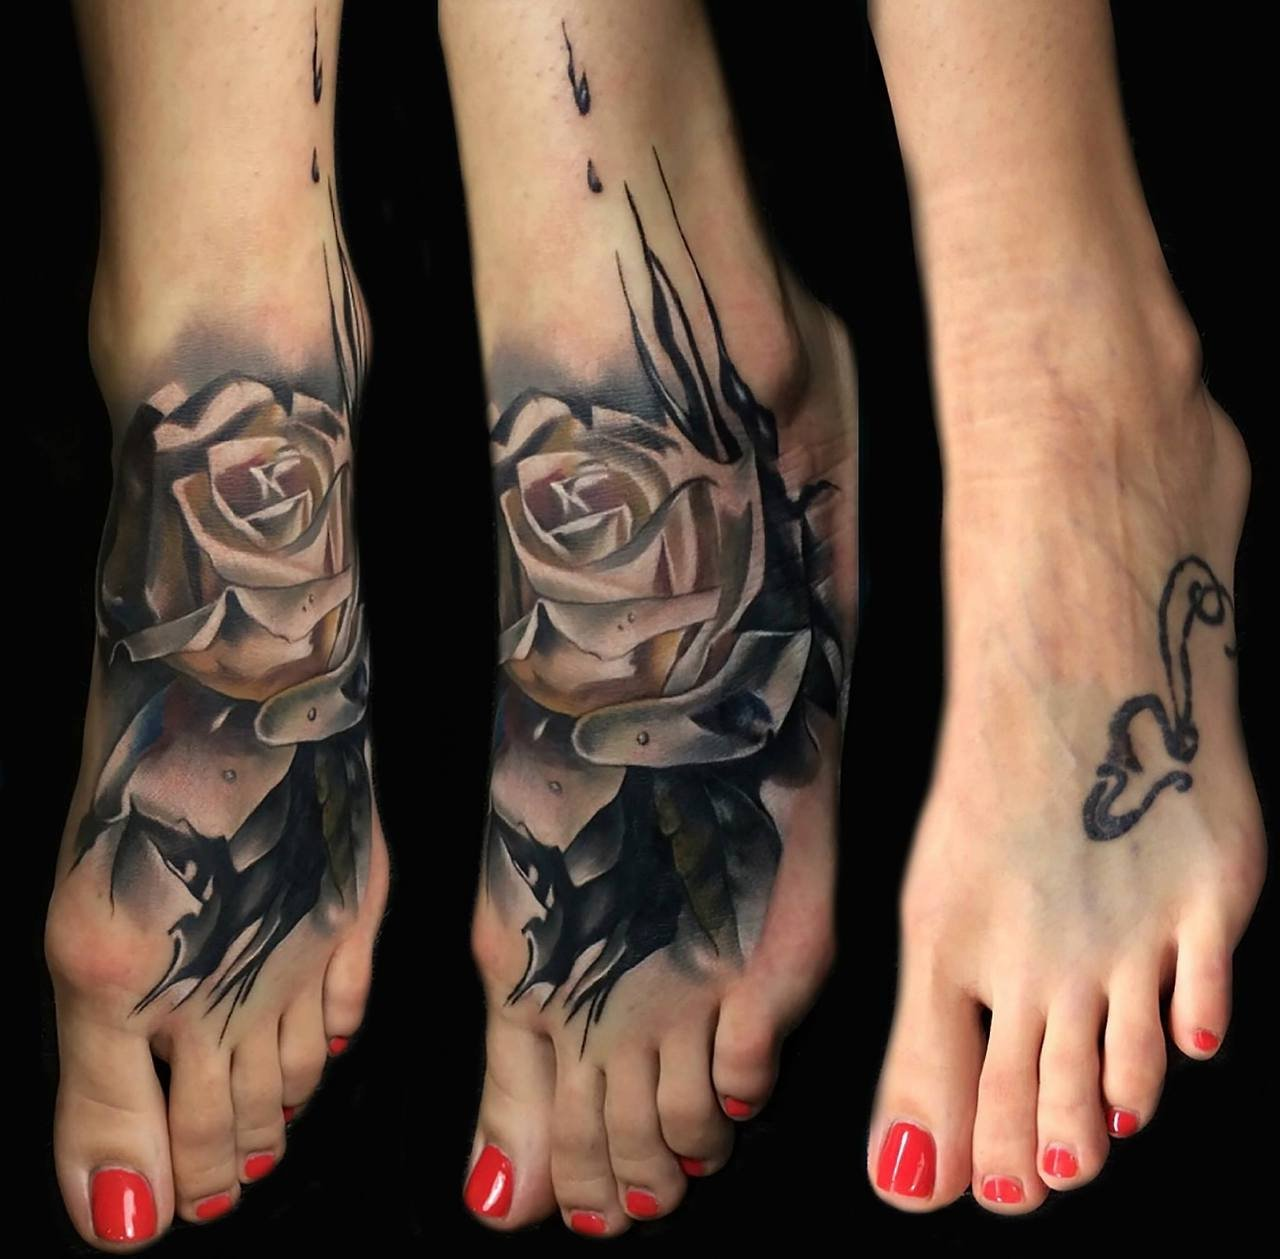 10 Nice Tattoo Ideas For Cover Ups foot rose cover up tattoo design best tattoo ideas gallery 4 2020